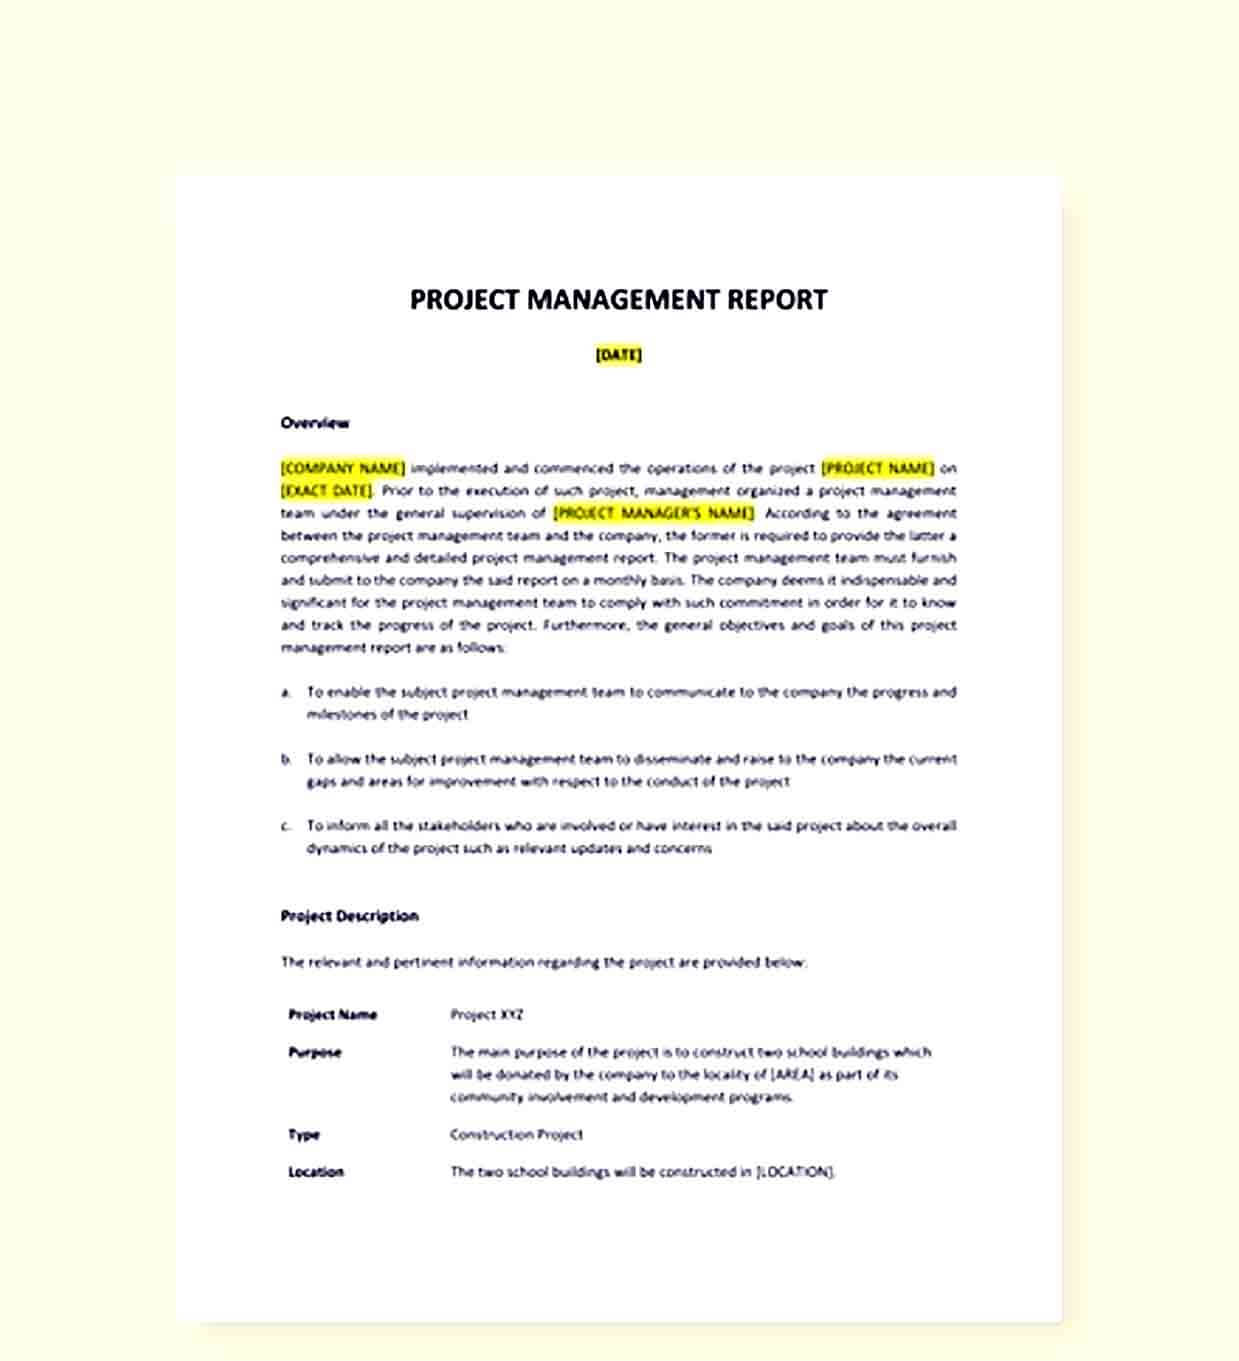 Sample Project Management Report